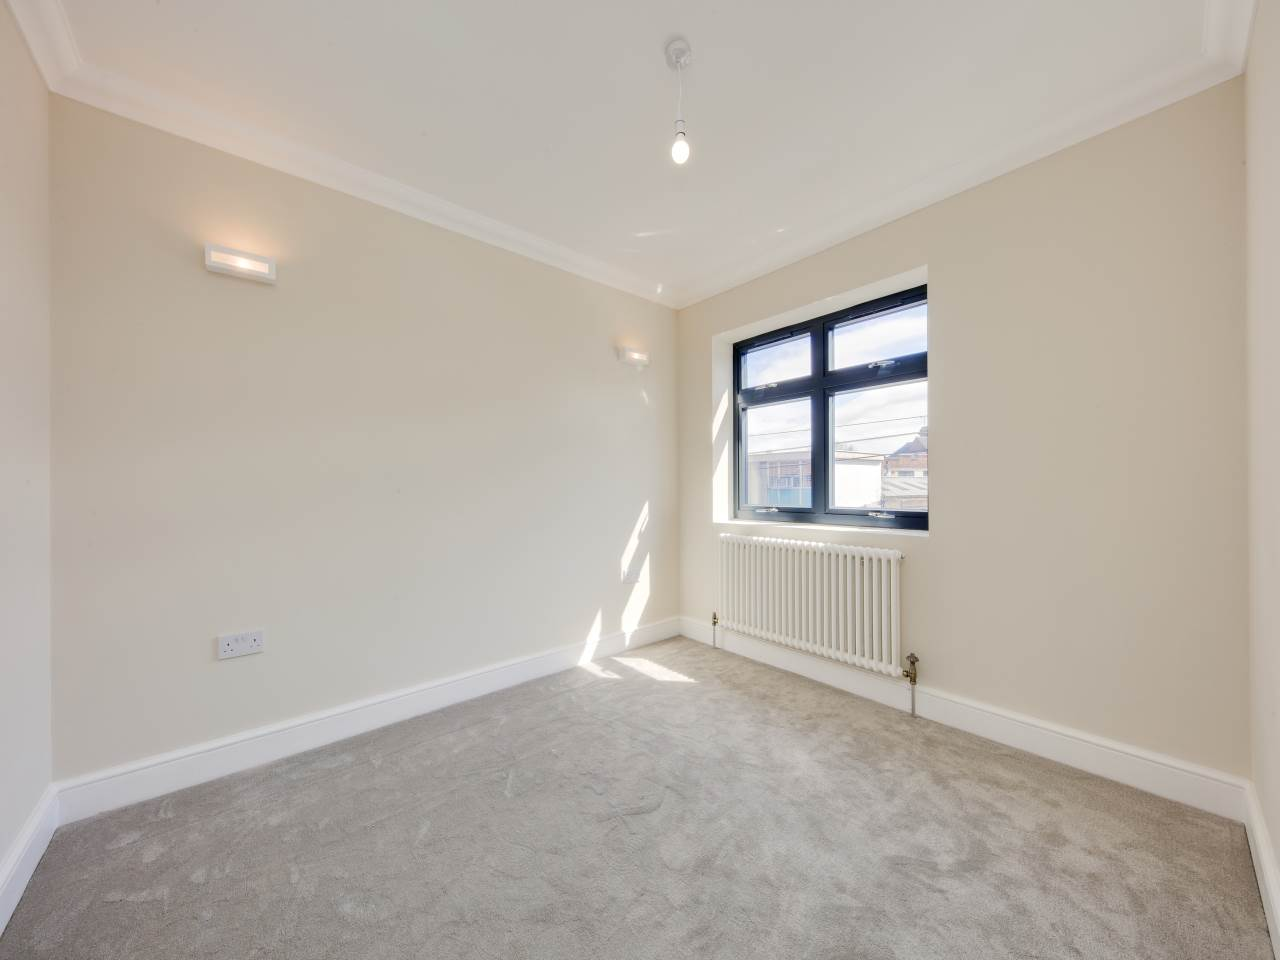 3 bed house for sale in Shernhall Street , Walthamstow   - Property Image 10